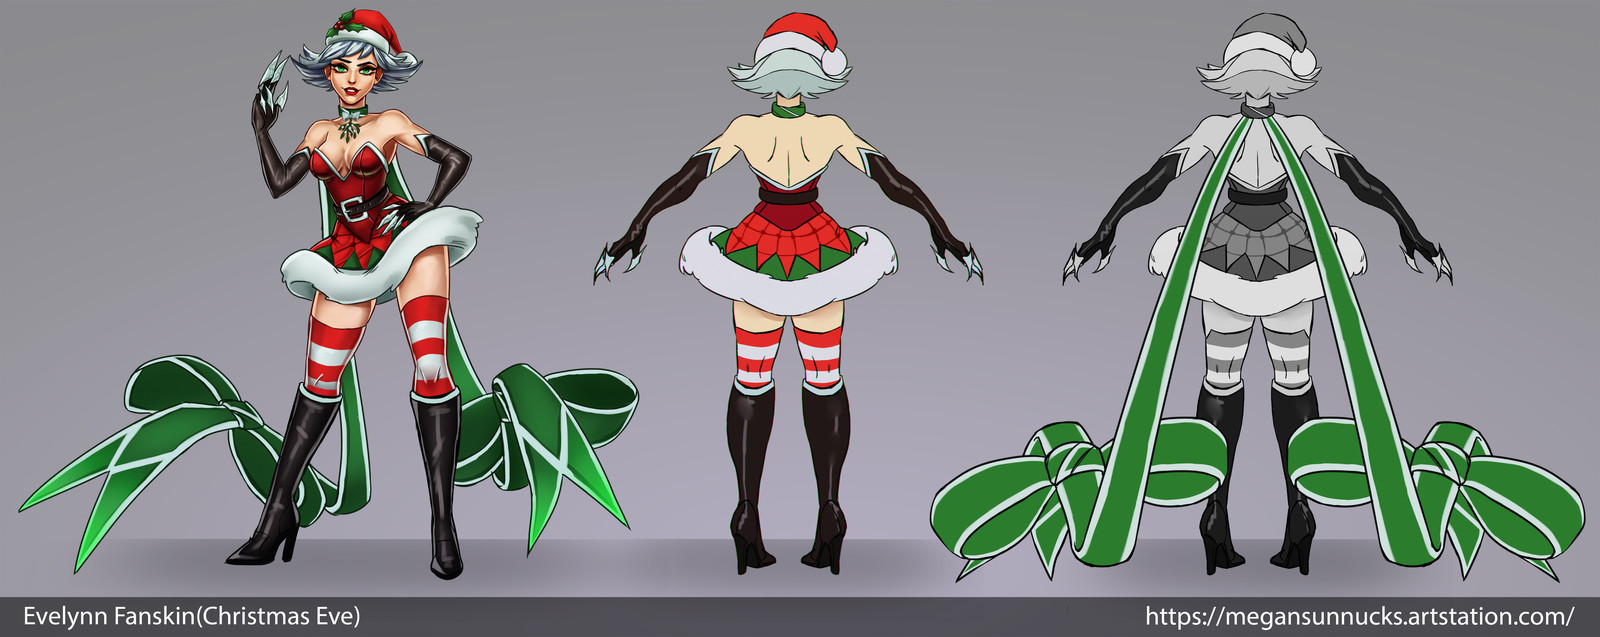 Christmas Eve(Evelynn Fanskin) - Concept sheet